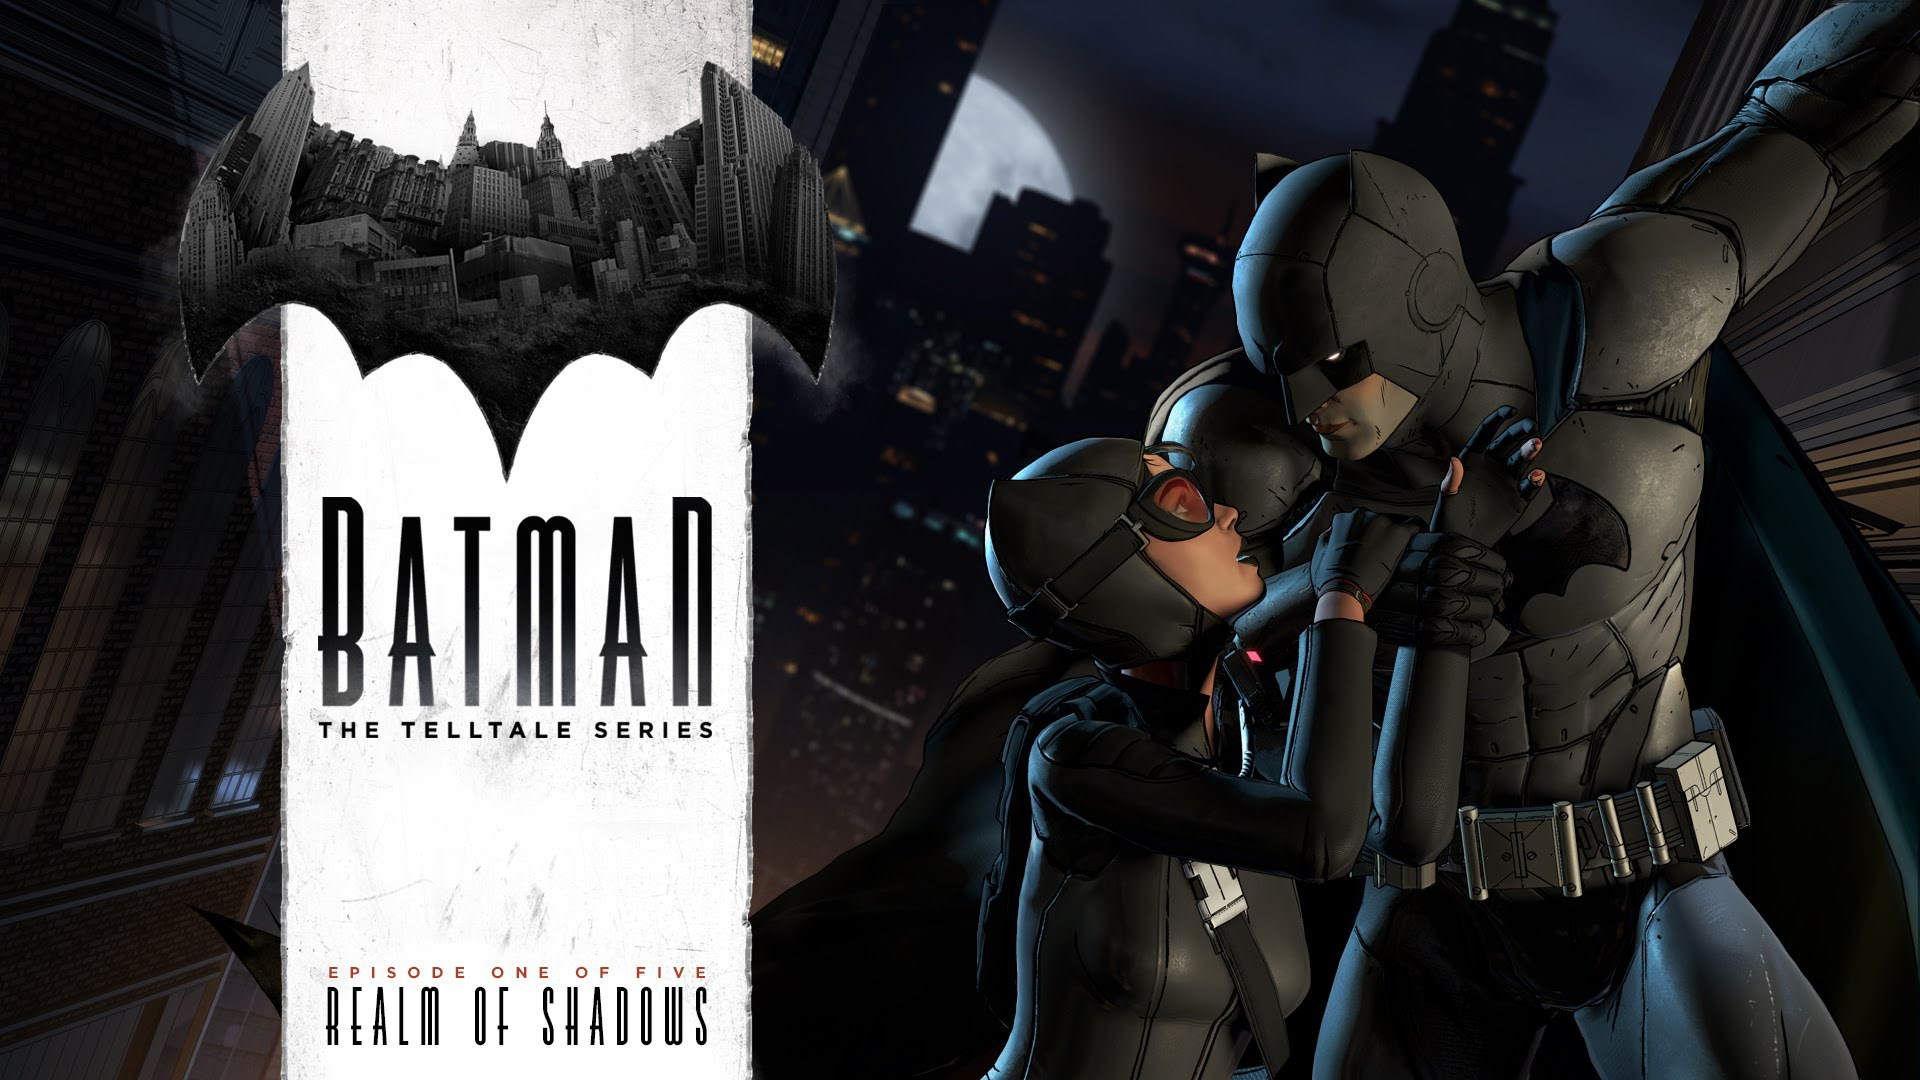 telltale-games-batman-the-telltale-series-fuer-ios-veroeffentlicht